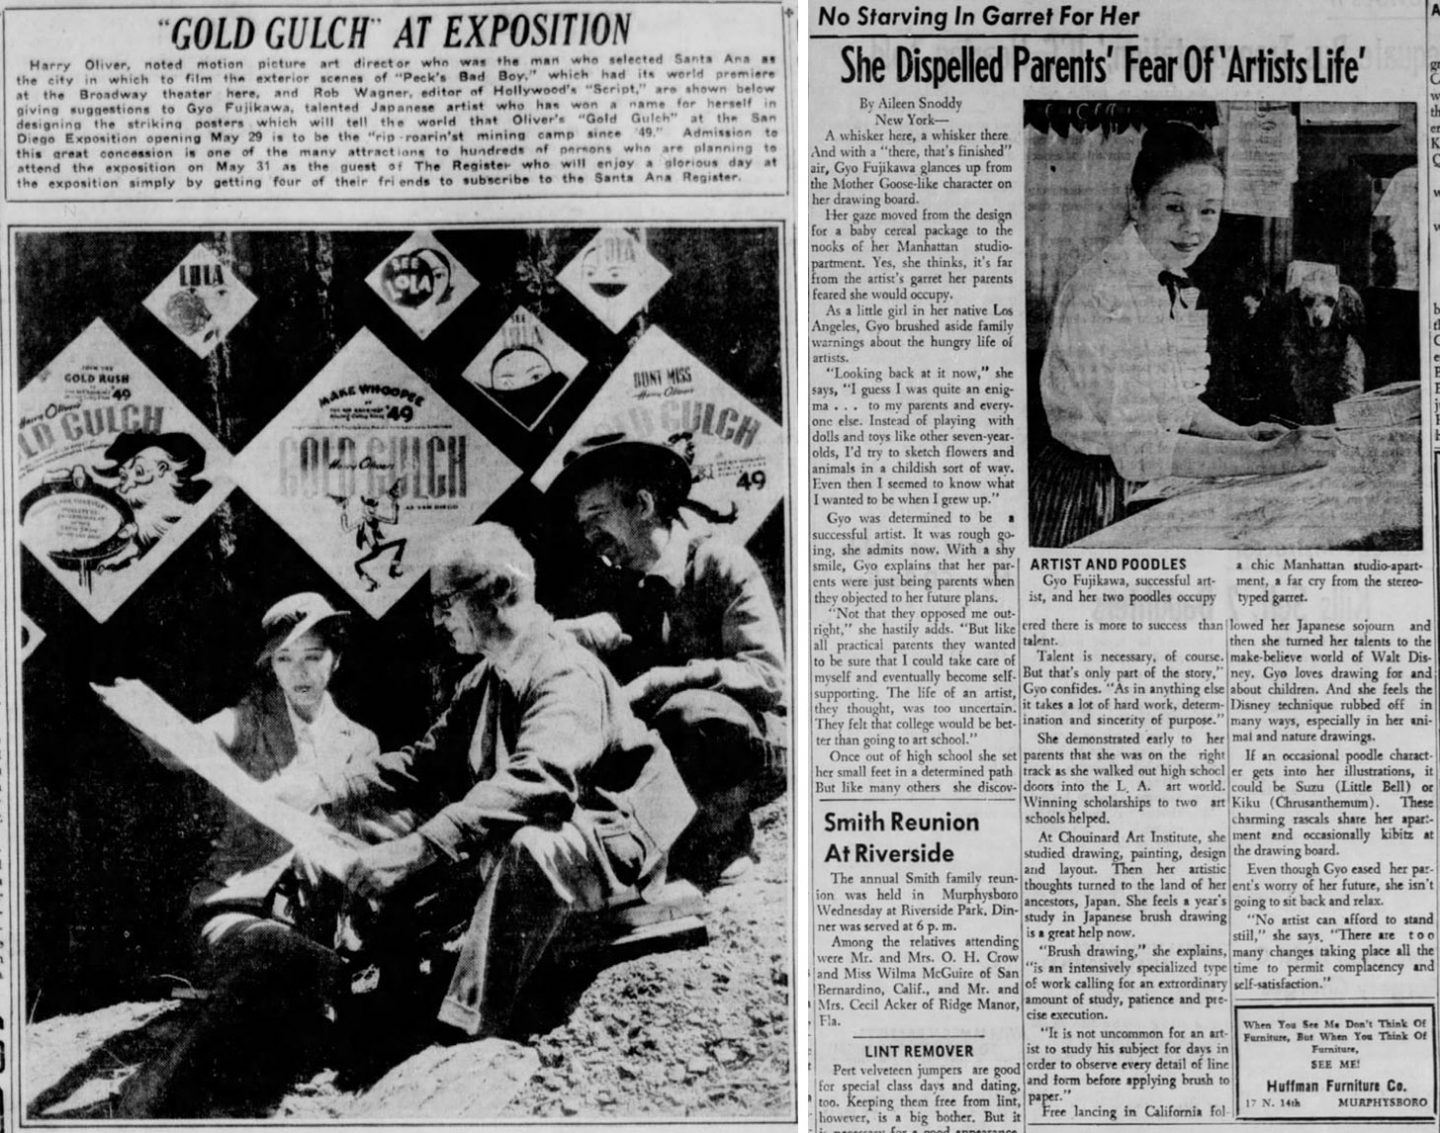 Newspaper pieces about Gyo Fujikawa from 1935 (left) and 1958.